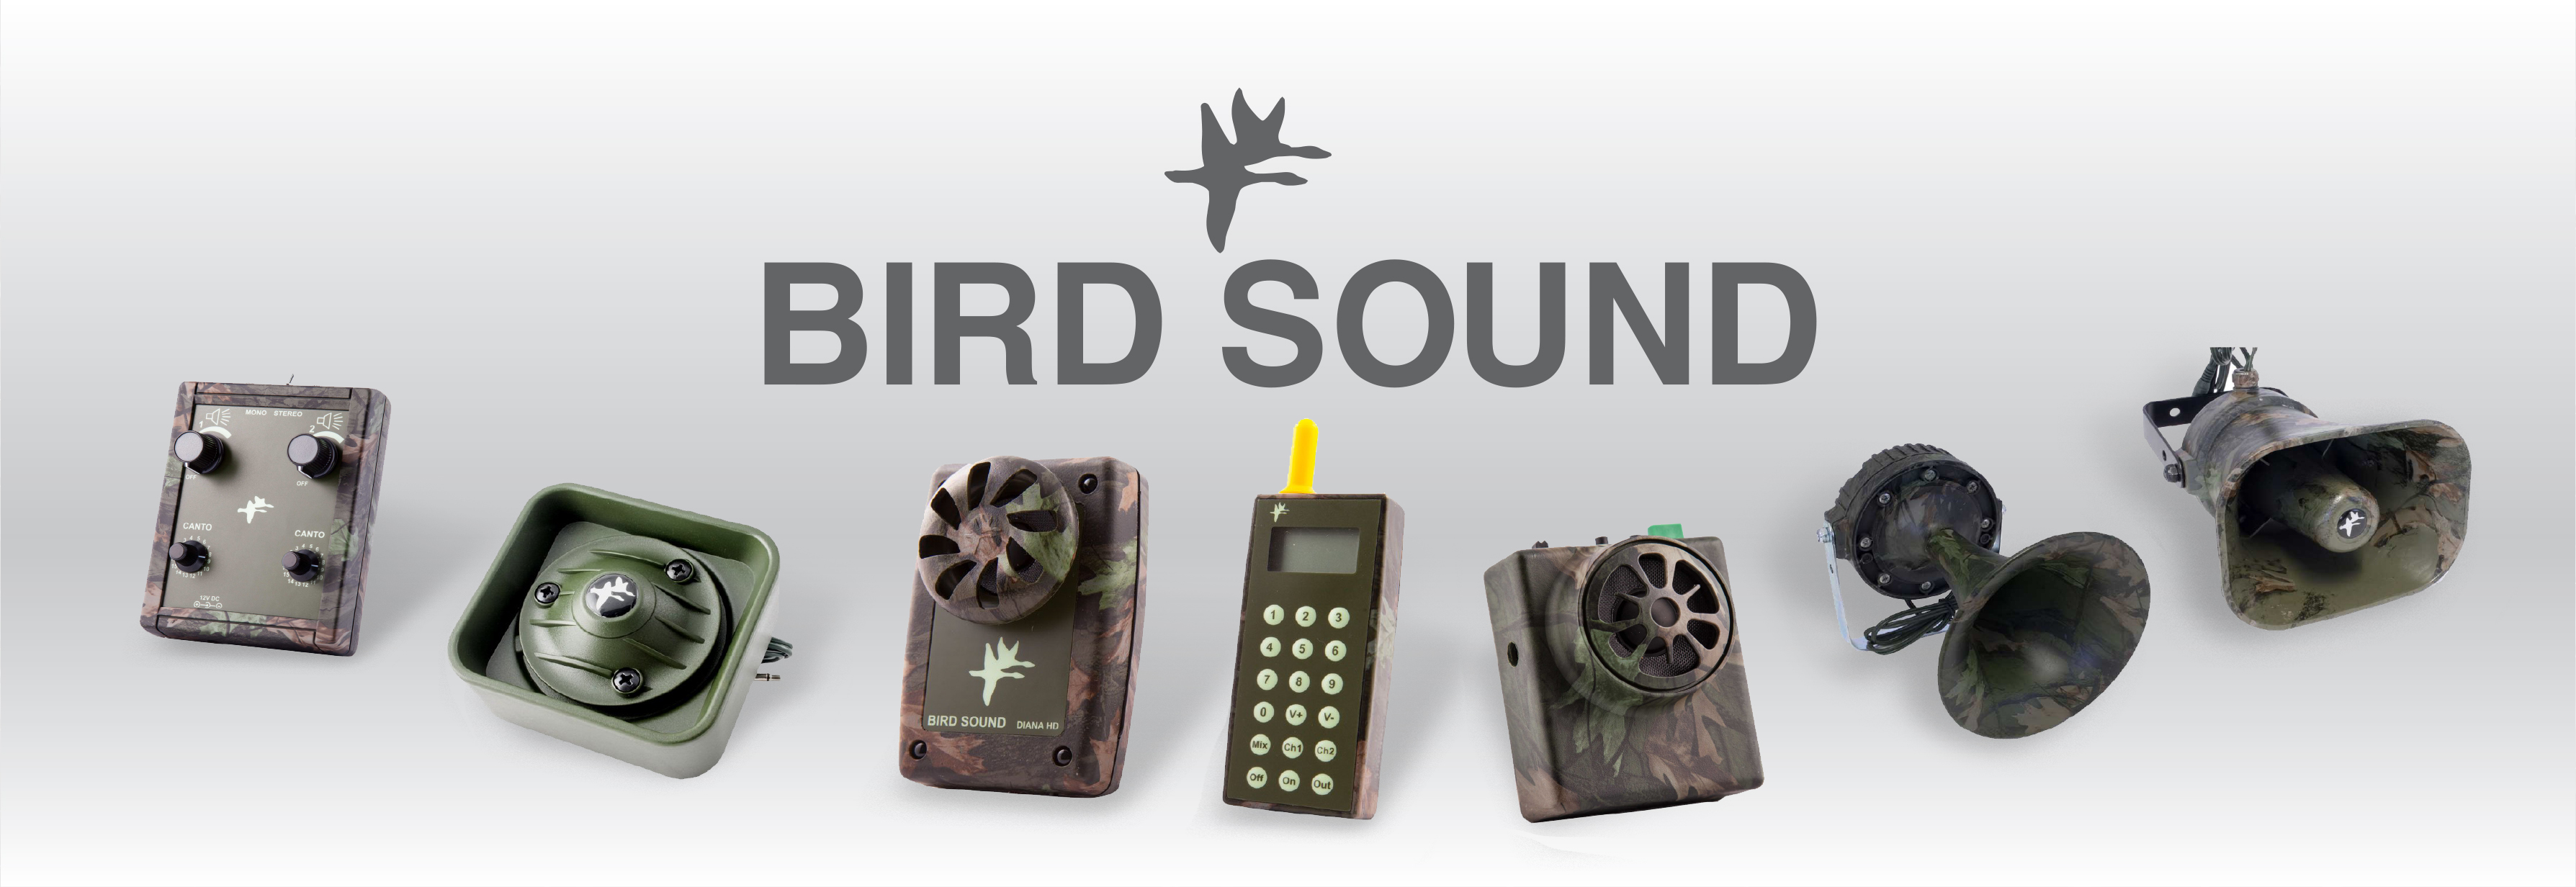 Bird Sound Richiami per uccelli